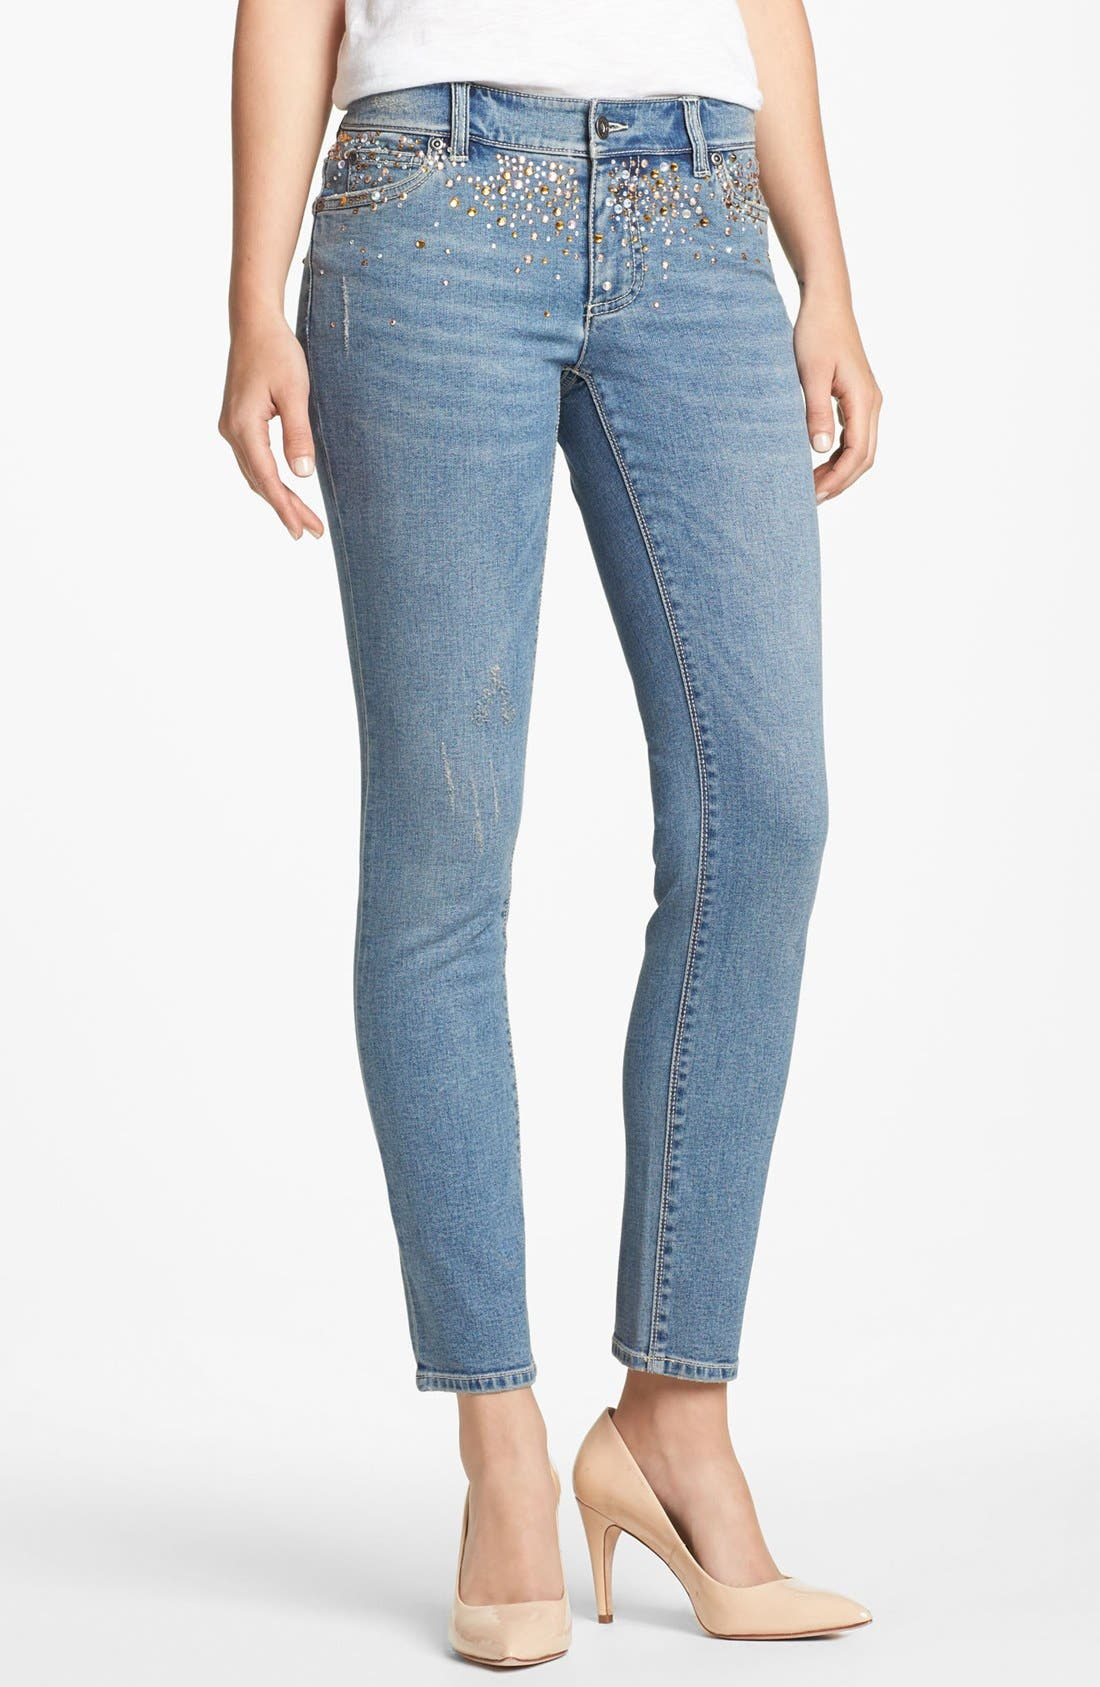 Alternate Image 1 Selected - Two by Vince Camuto Embellished Distressed Straight Leg Jeans (Petite)